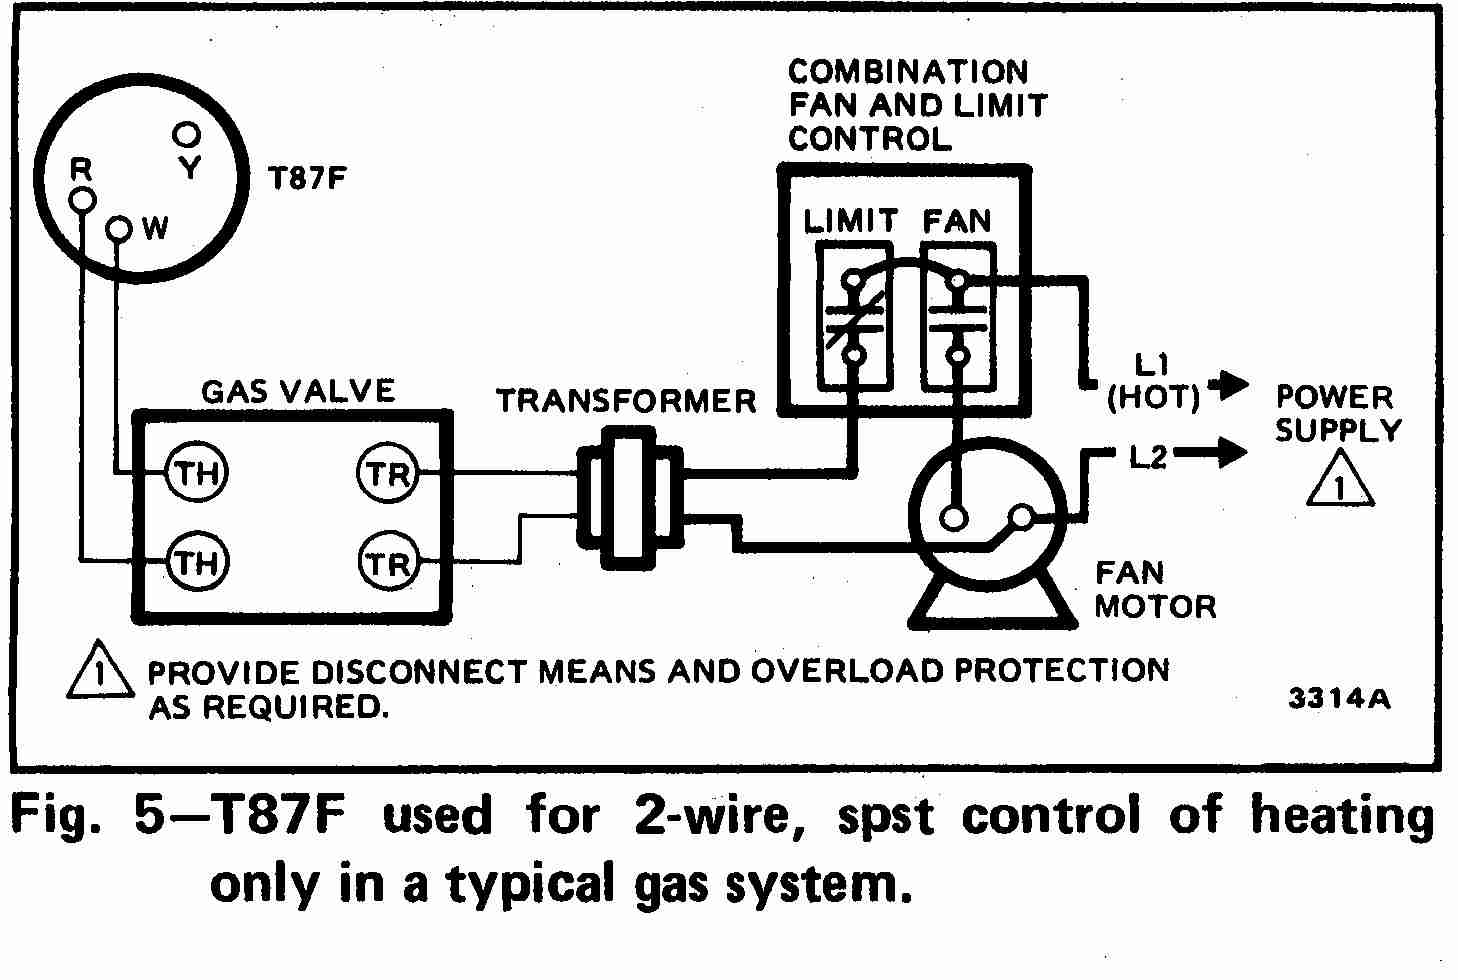 TT_T87F_0002_2Wg_DJF guide to wiring connections for room thermostats 4 Wire Trailer at fashall.co